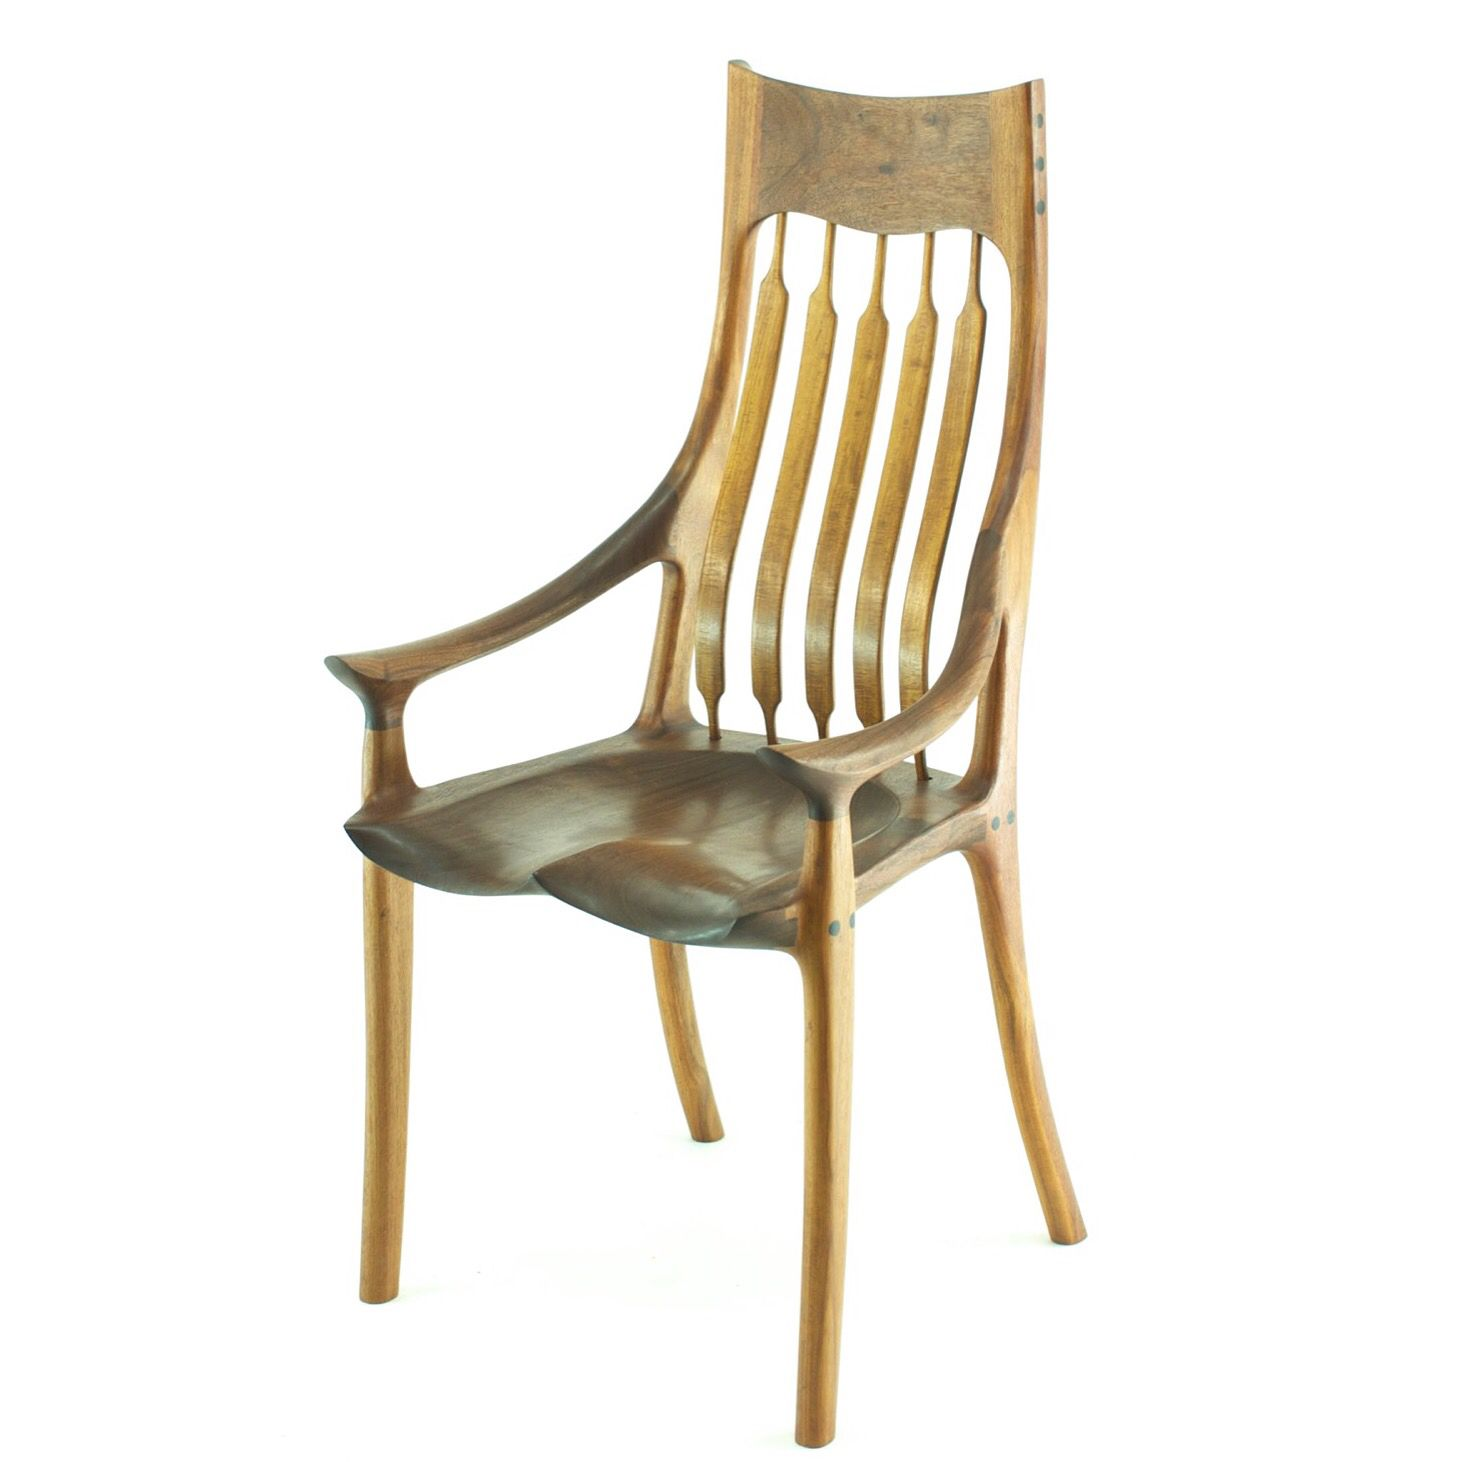 Sam Maloof style sculpted dining chair features bent